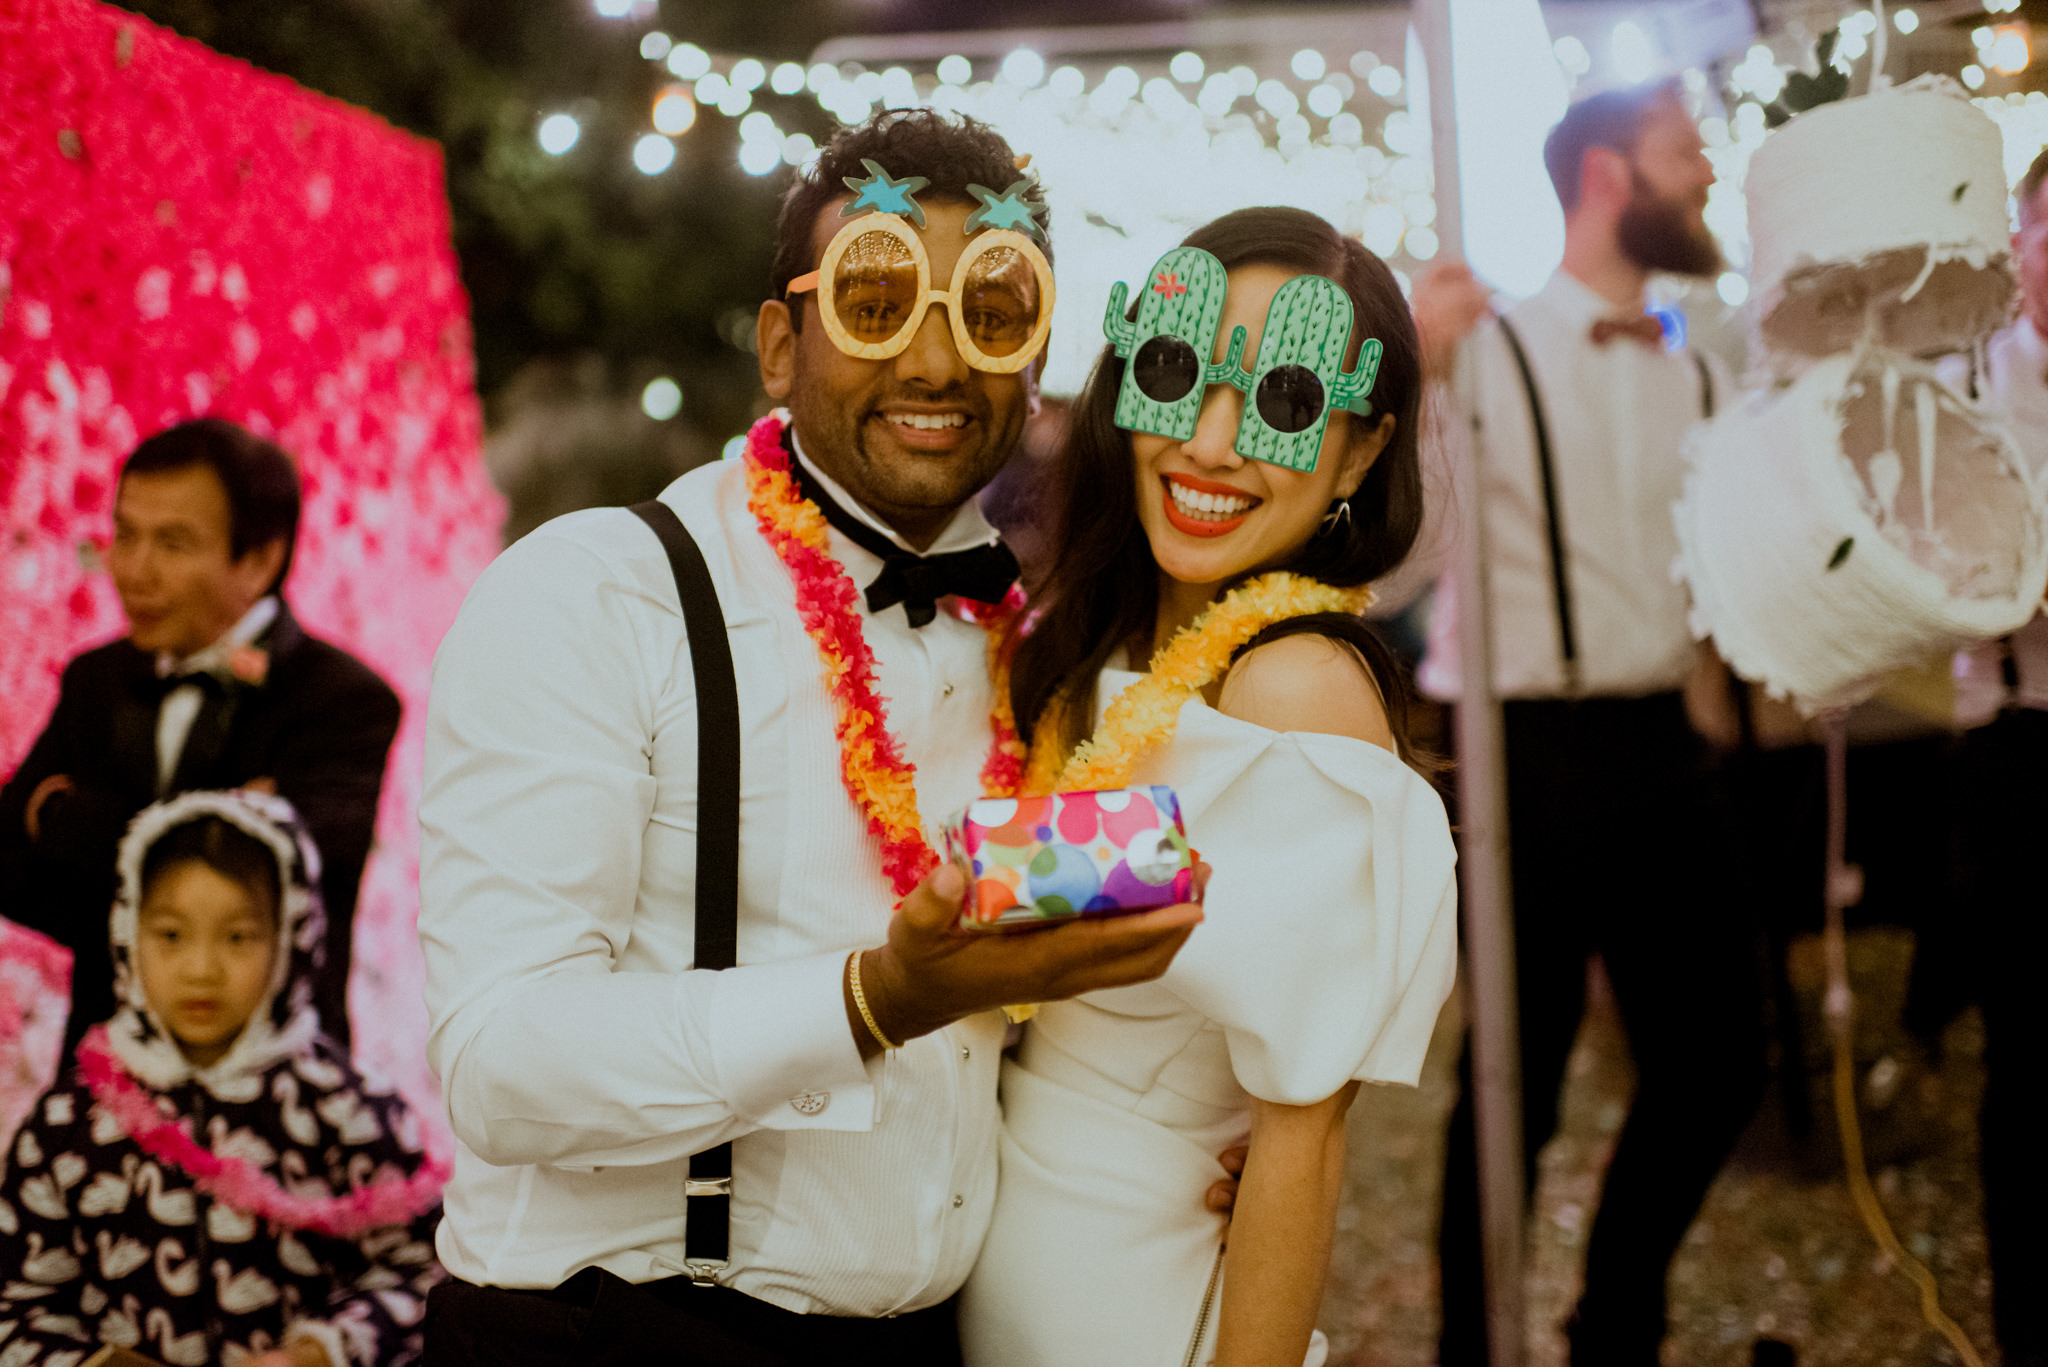 Bride and groom posing with novelty party accessories